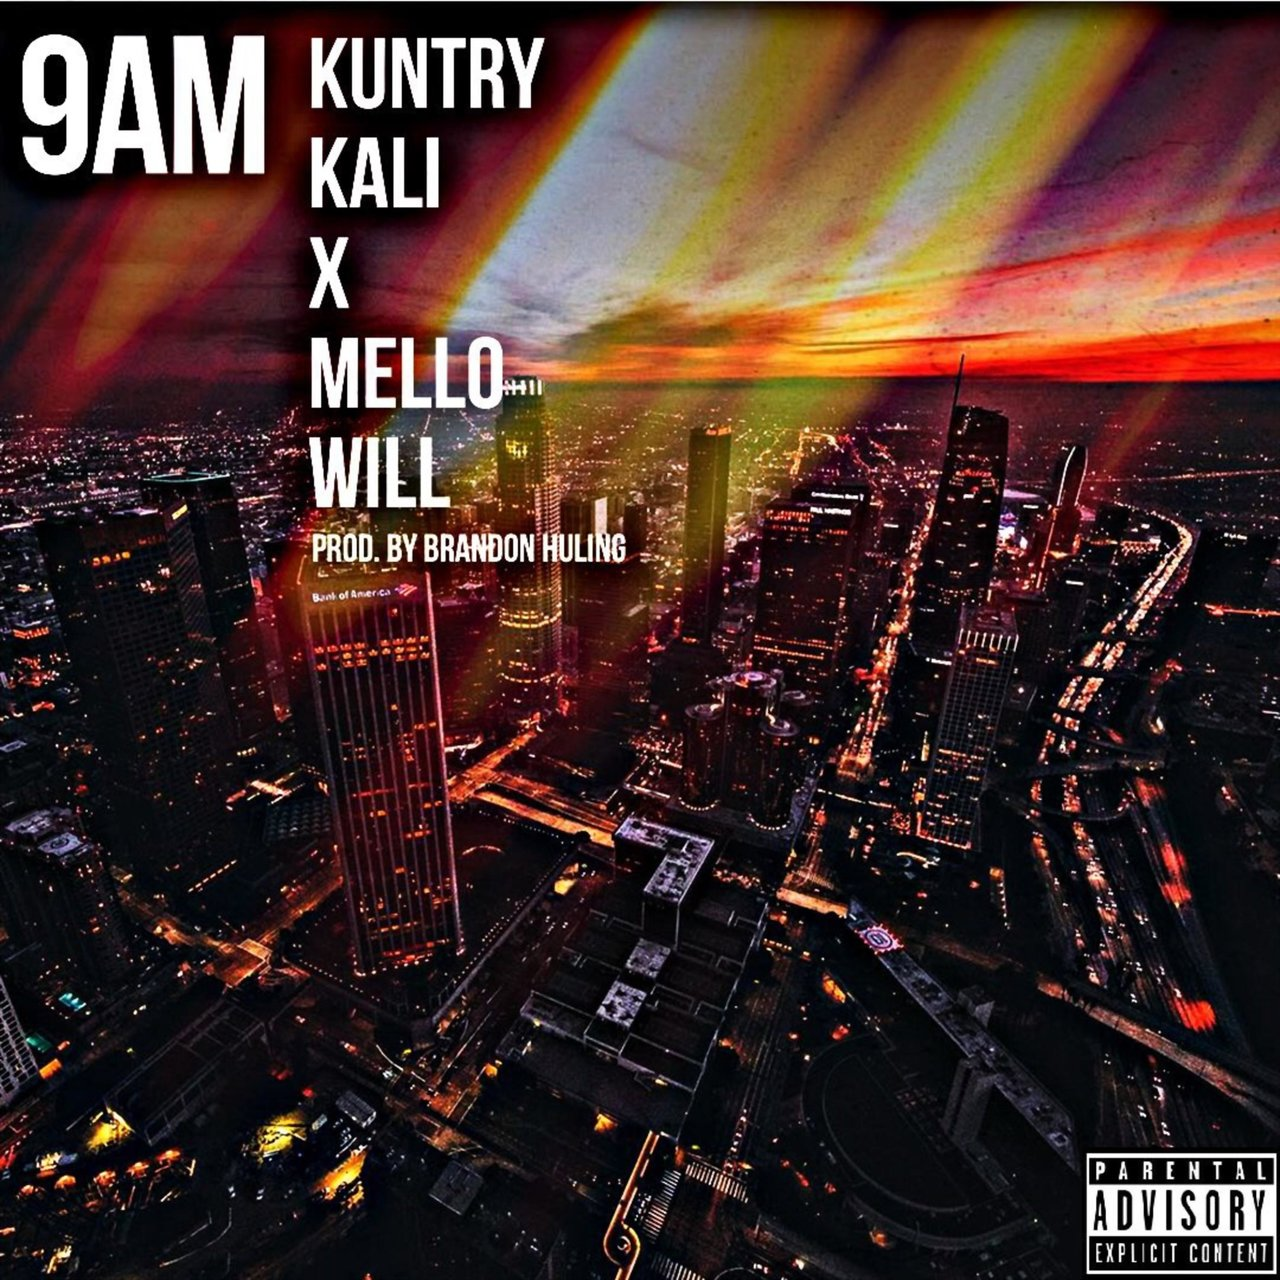 9am (feat. Mello Will)